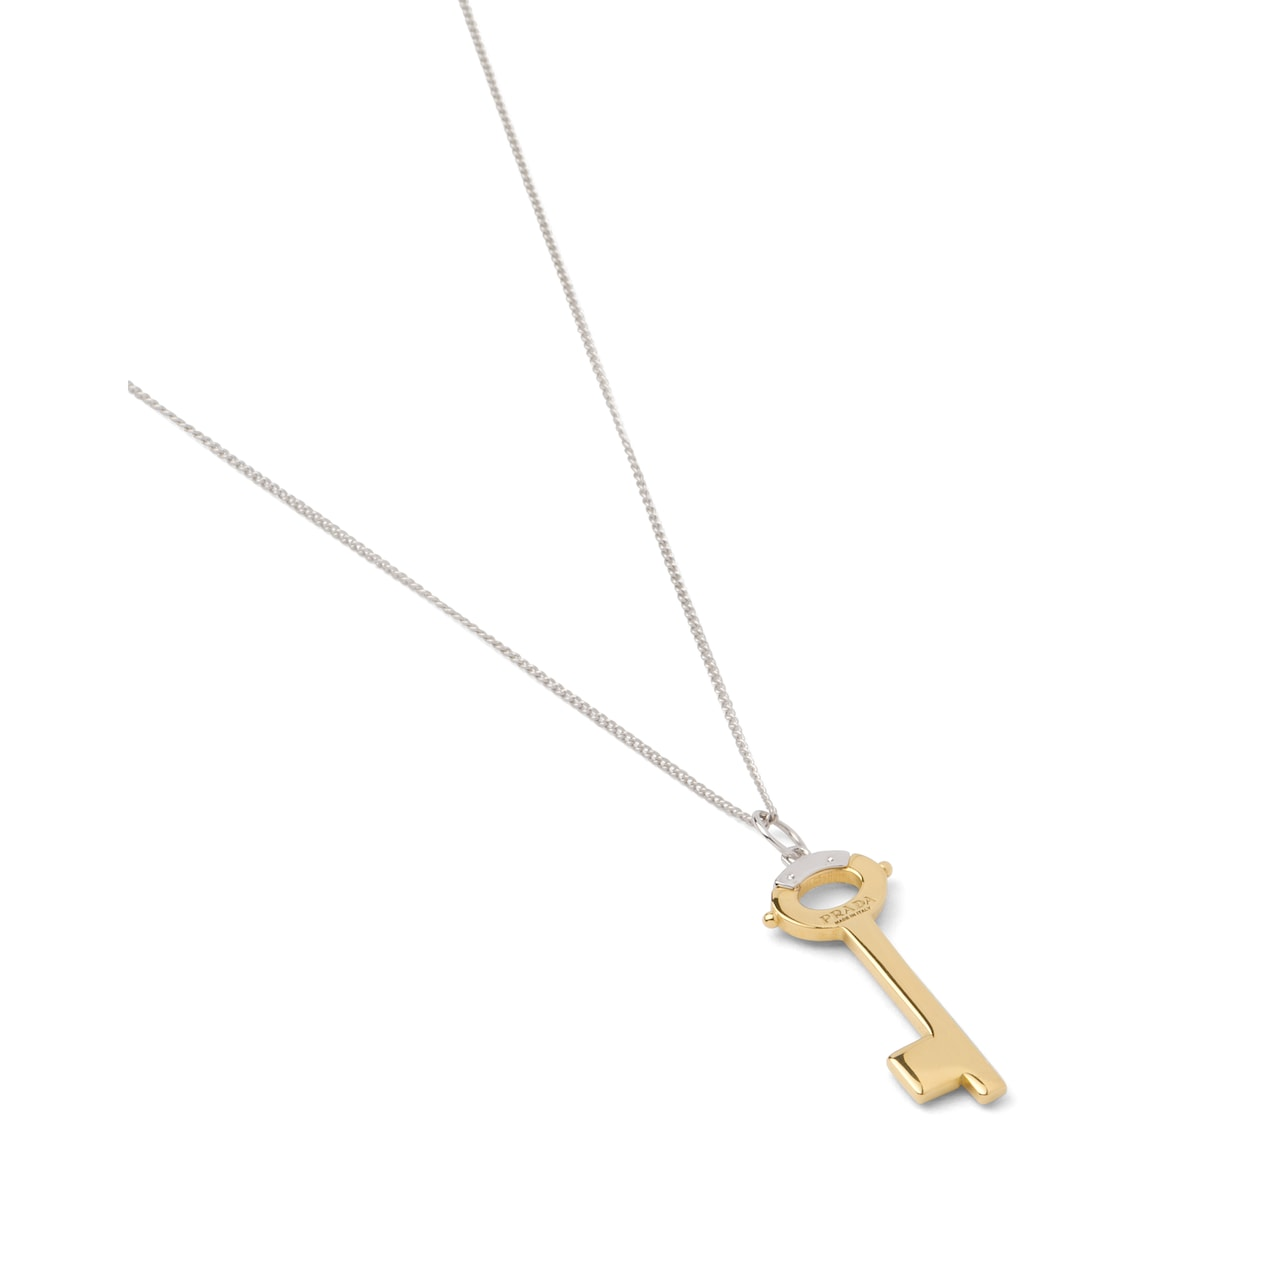 Prada Prada Fine Jewellery Pendant necklace 3